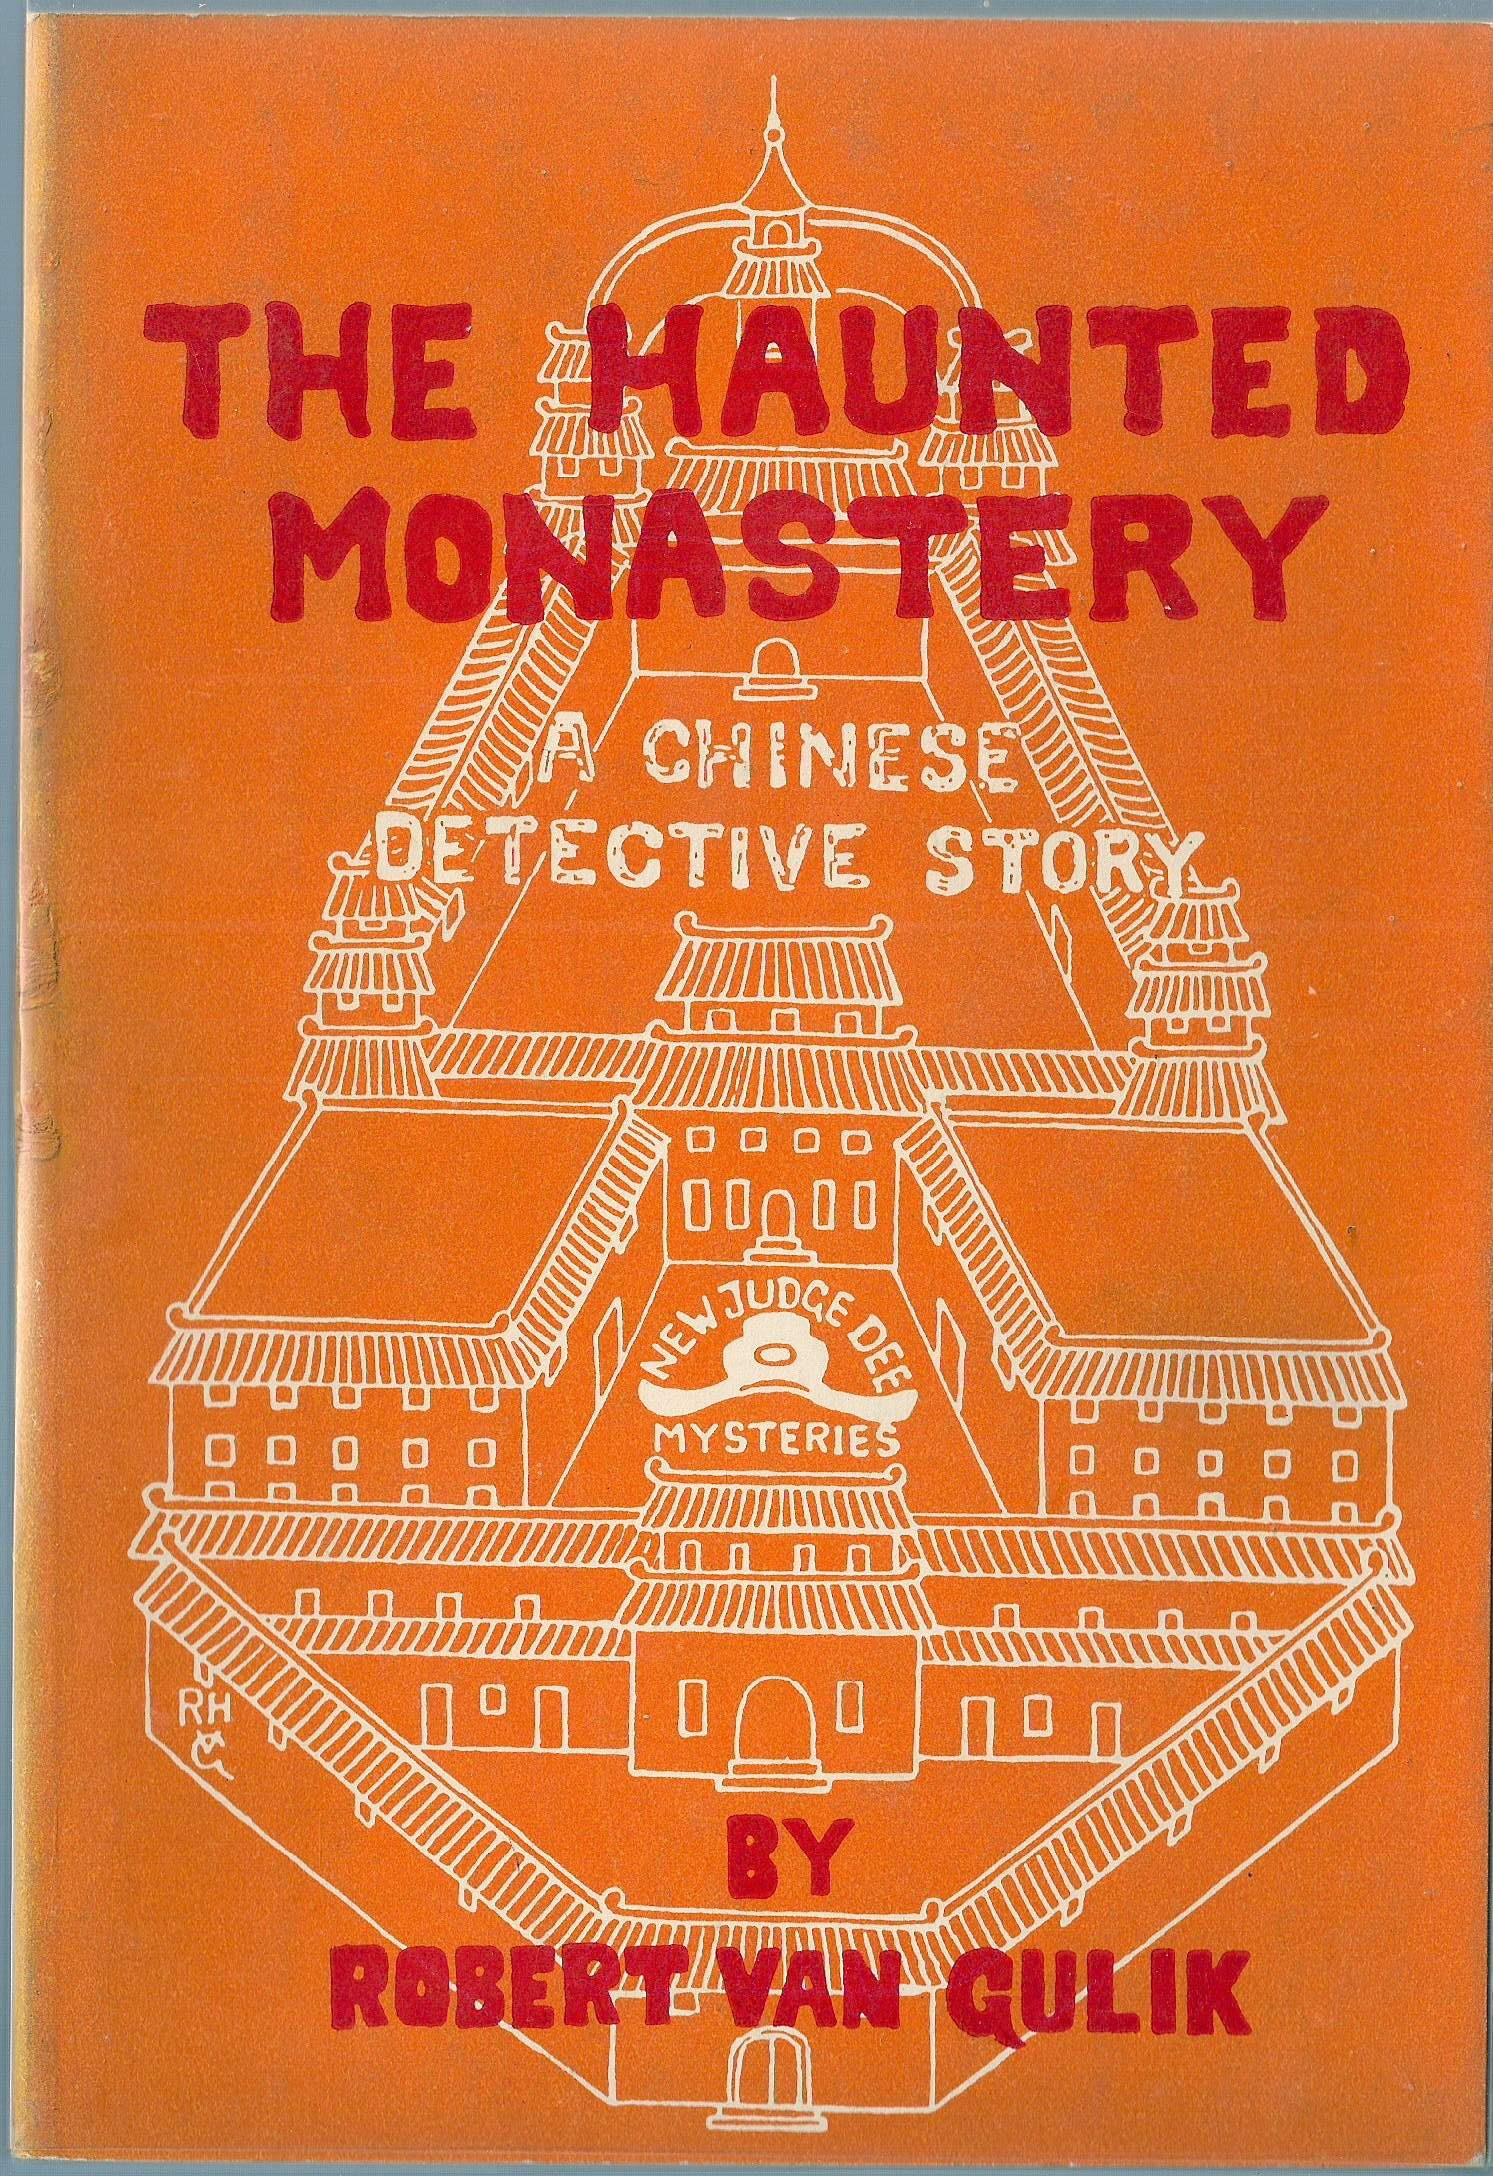 The Haunted Monastery Judge Dee Robert Van Gulik 1969 Hardcover 1st Edition